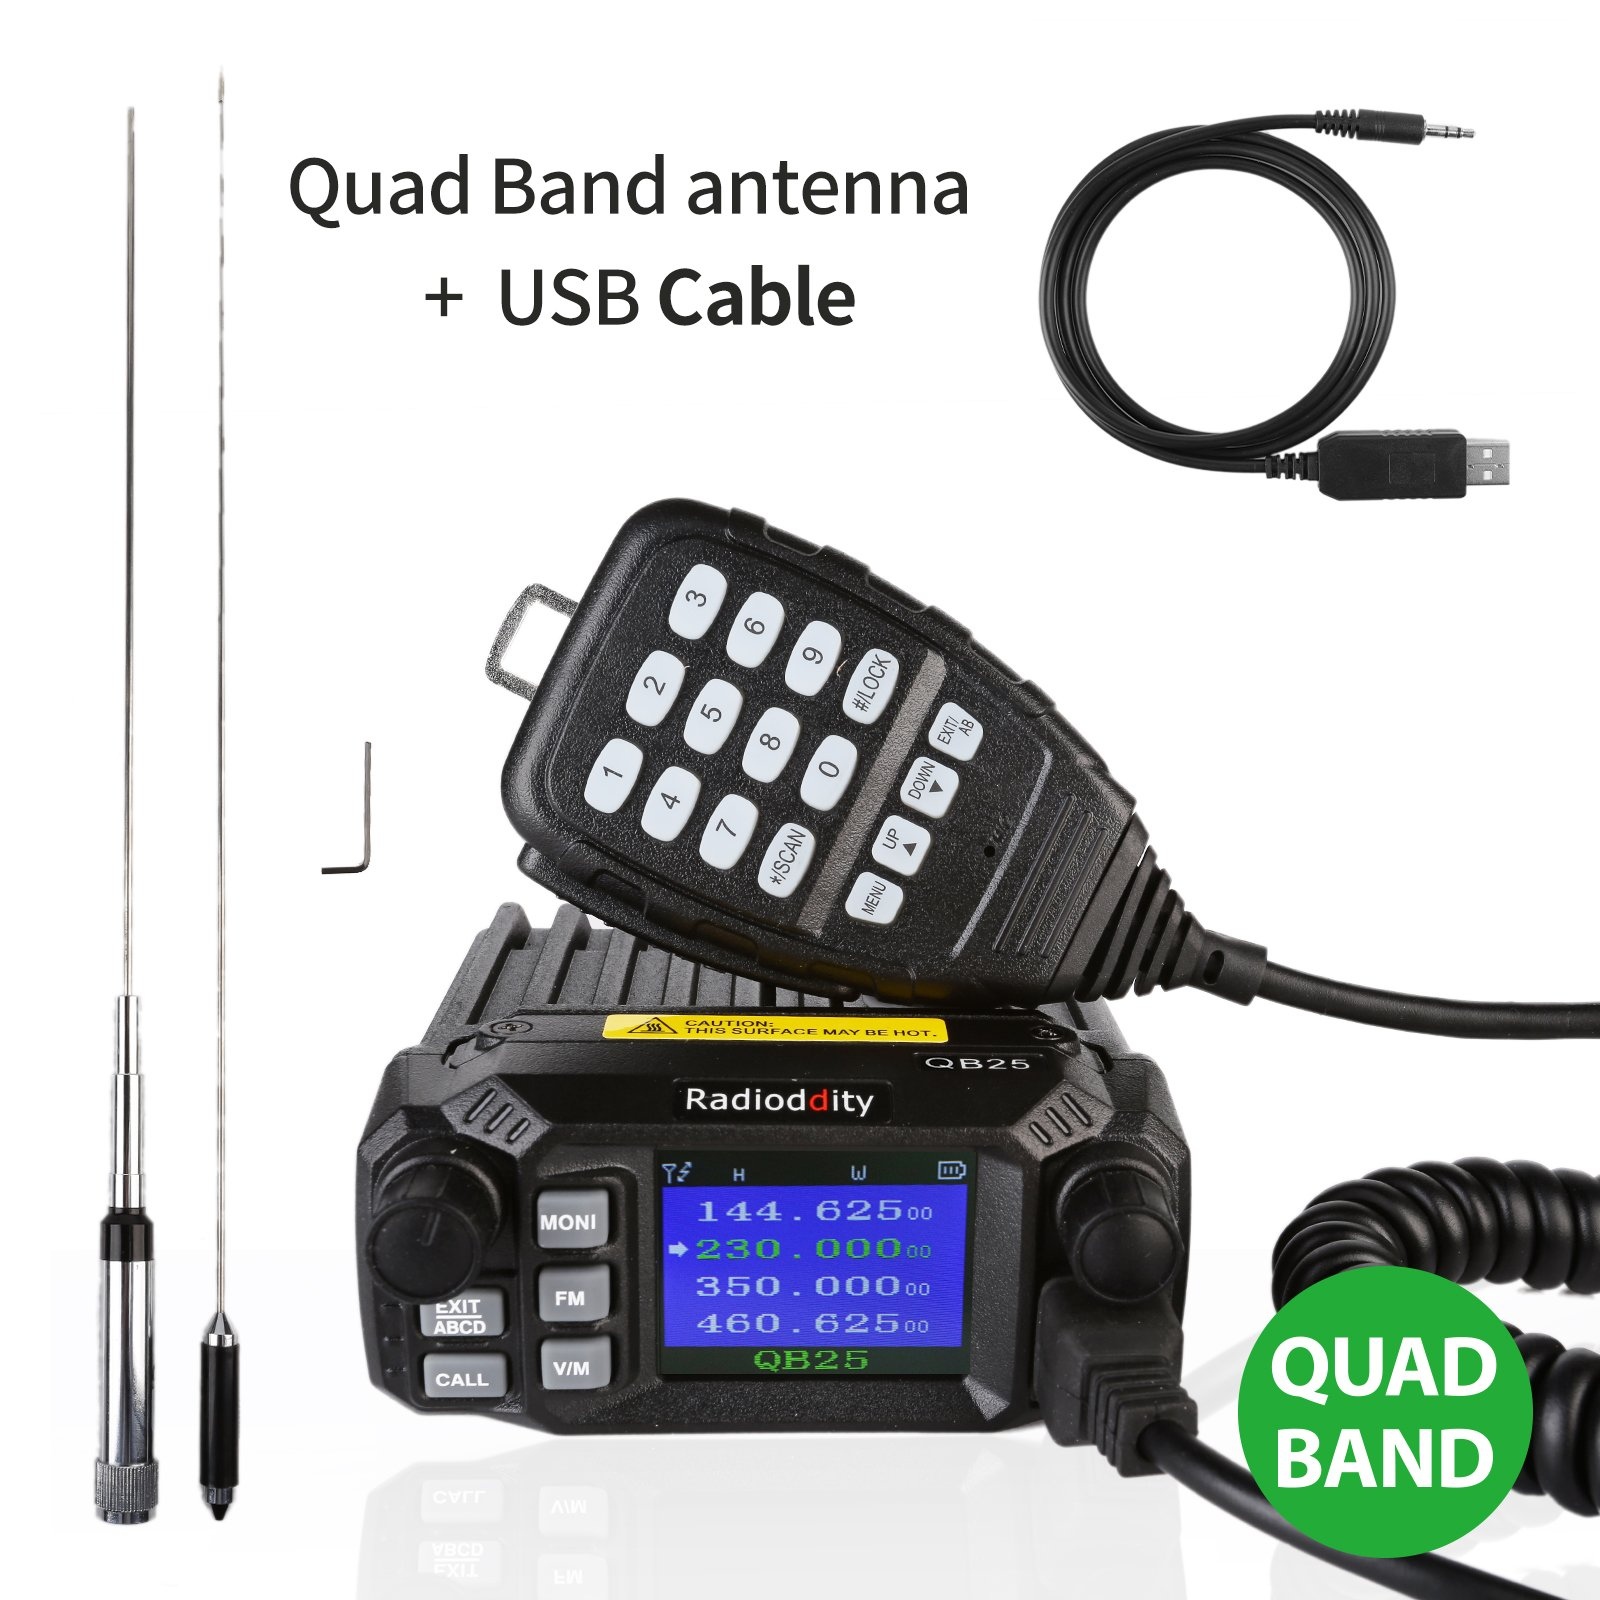 Radioddity QB25 Pro Quad Band Quad-standby Mini Mobile Car Truck Radio, VHF UHF 144/220/350/440 MHz, 25W Vehicle Transceiver with Cable & CD + 50W High Gain Quad Band Antenna